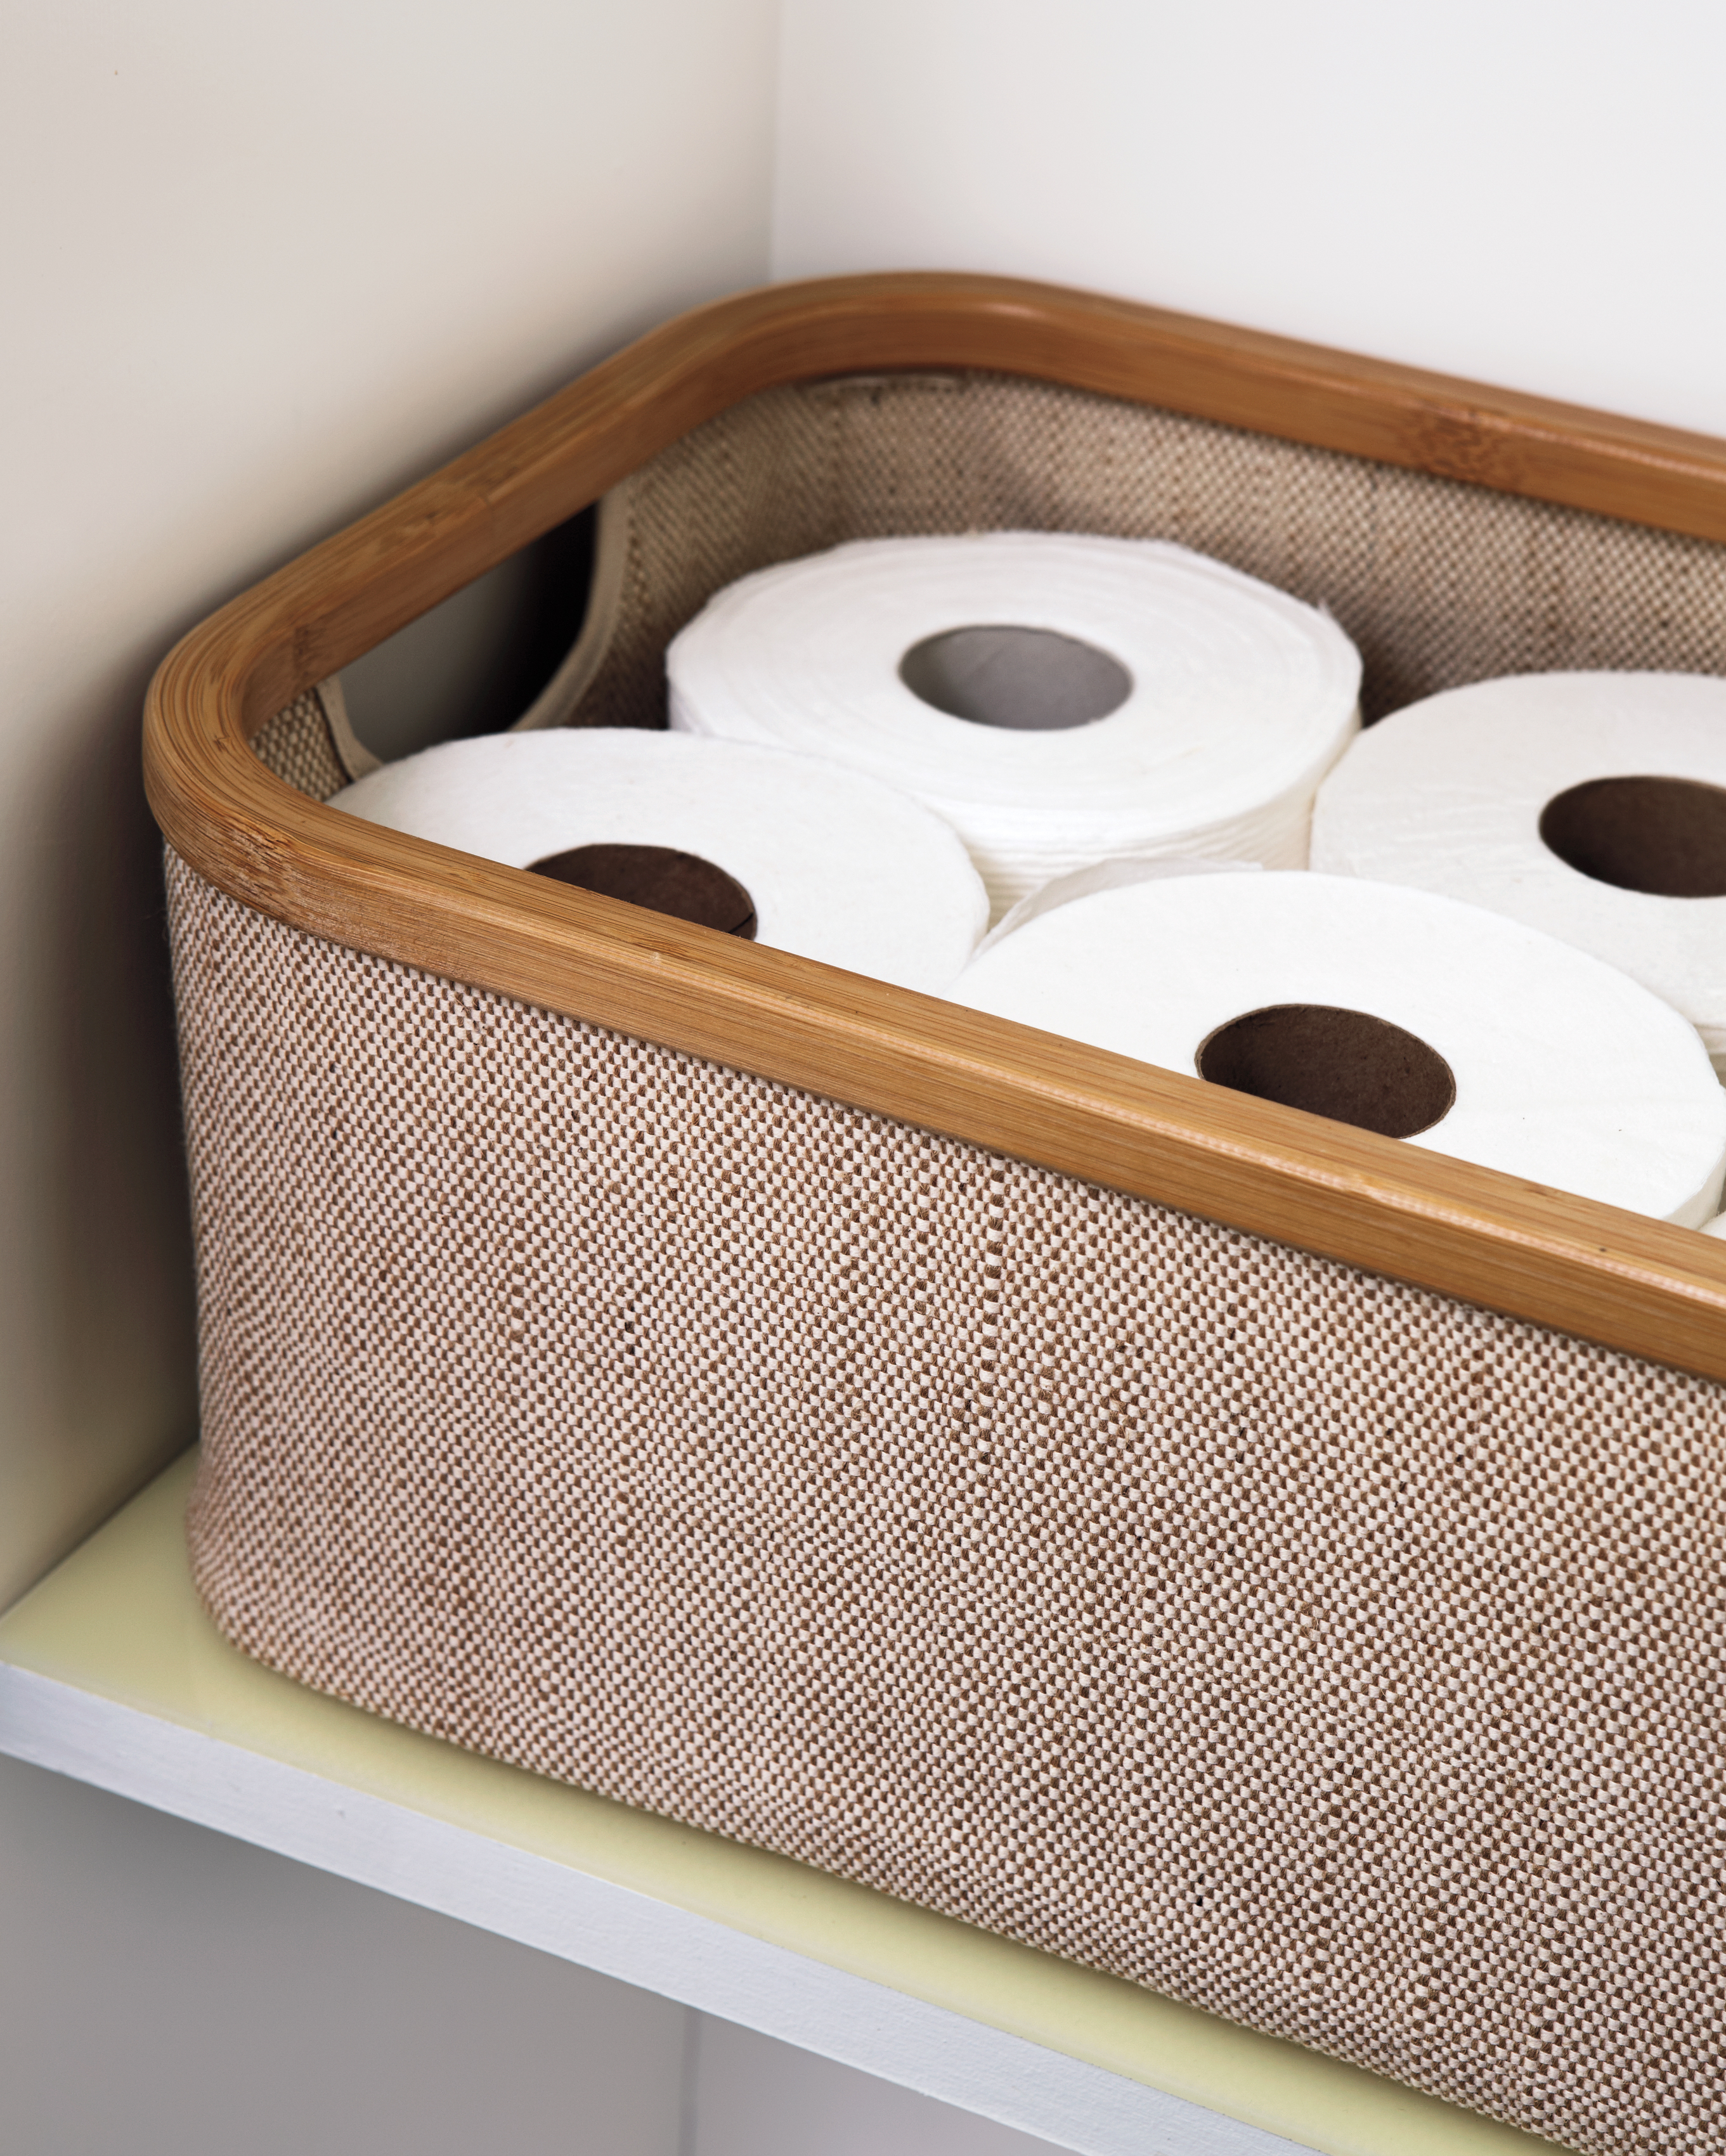 bathroom-storage-toilet-paper-6121-d111382.jpg